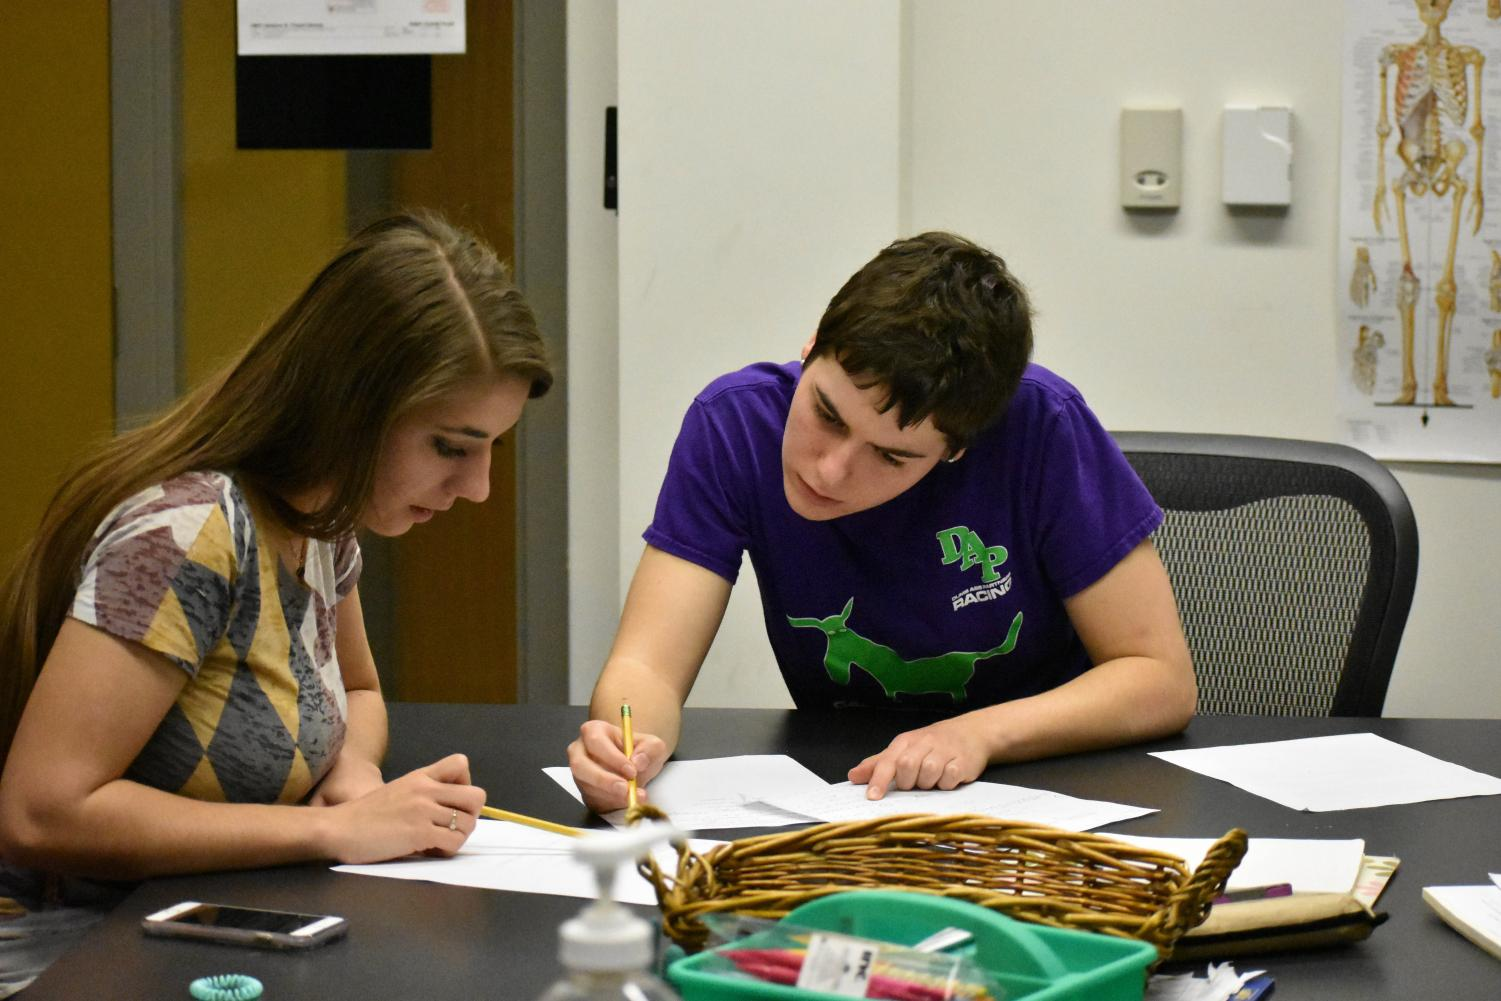 Second-year students Jessica Strauss (left) and Hannah Peterson work on their math homework in a study group.